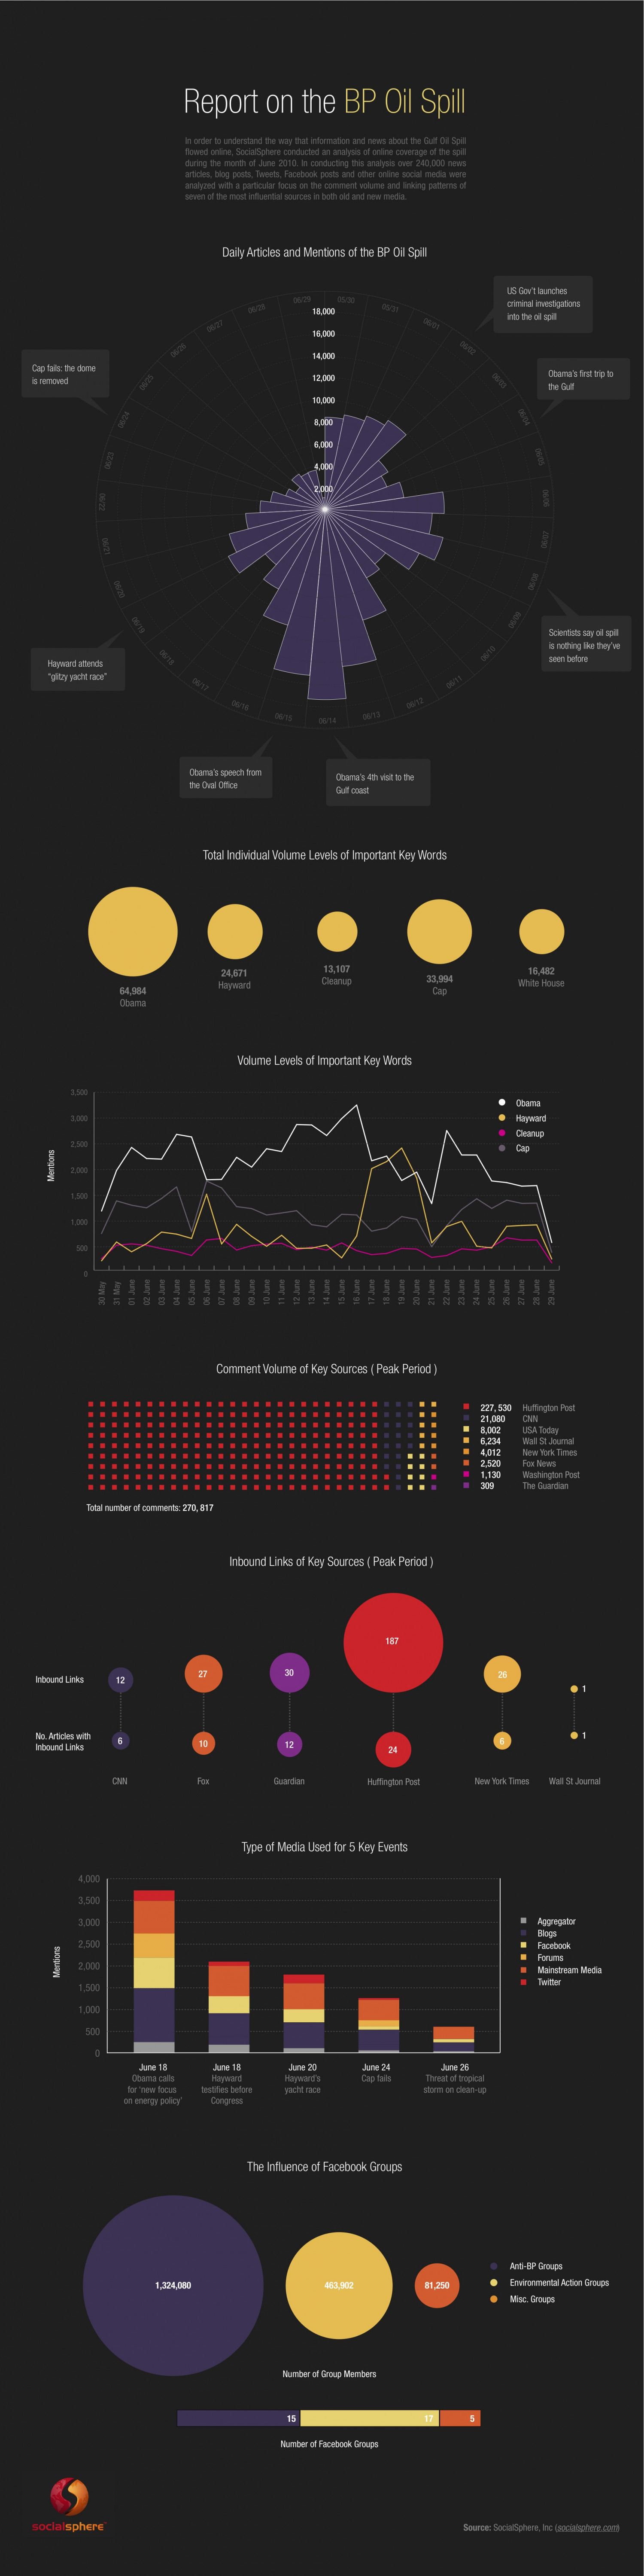 Report on the BP Oil Spill  Infographic